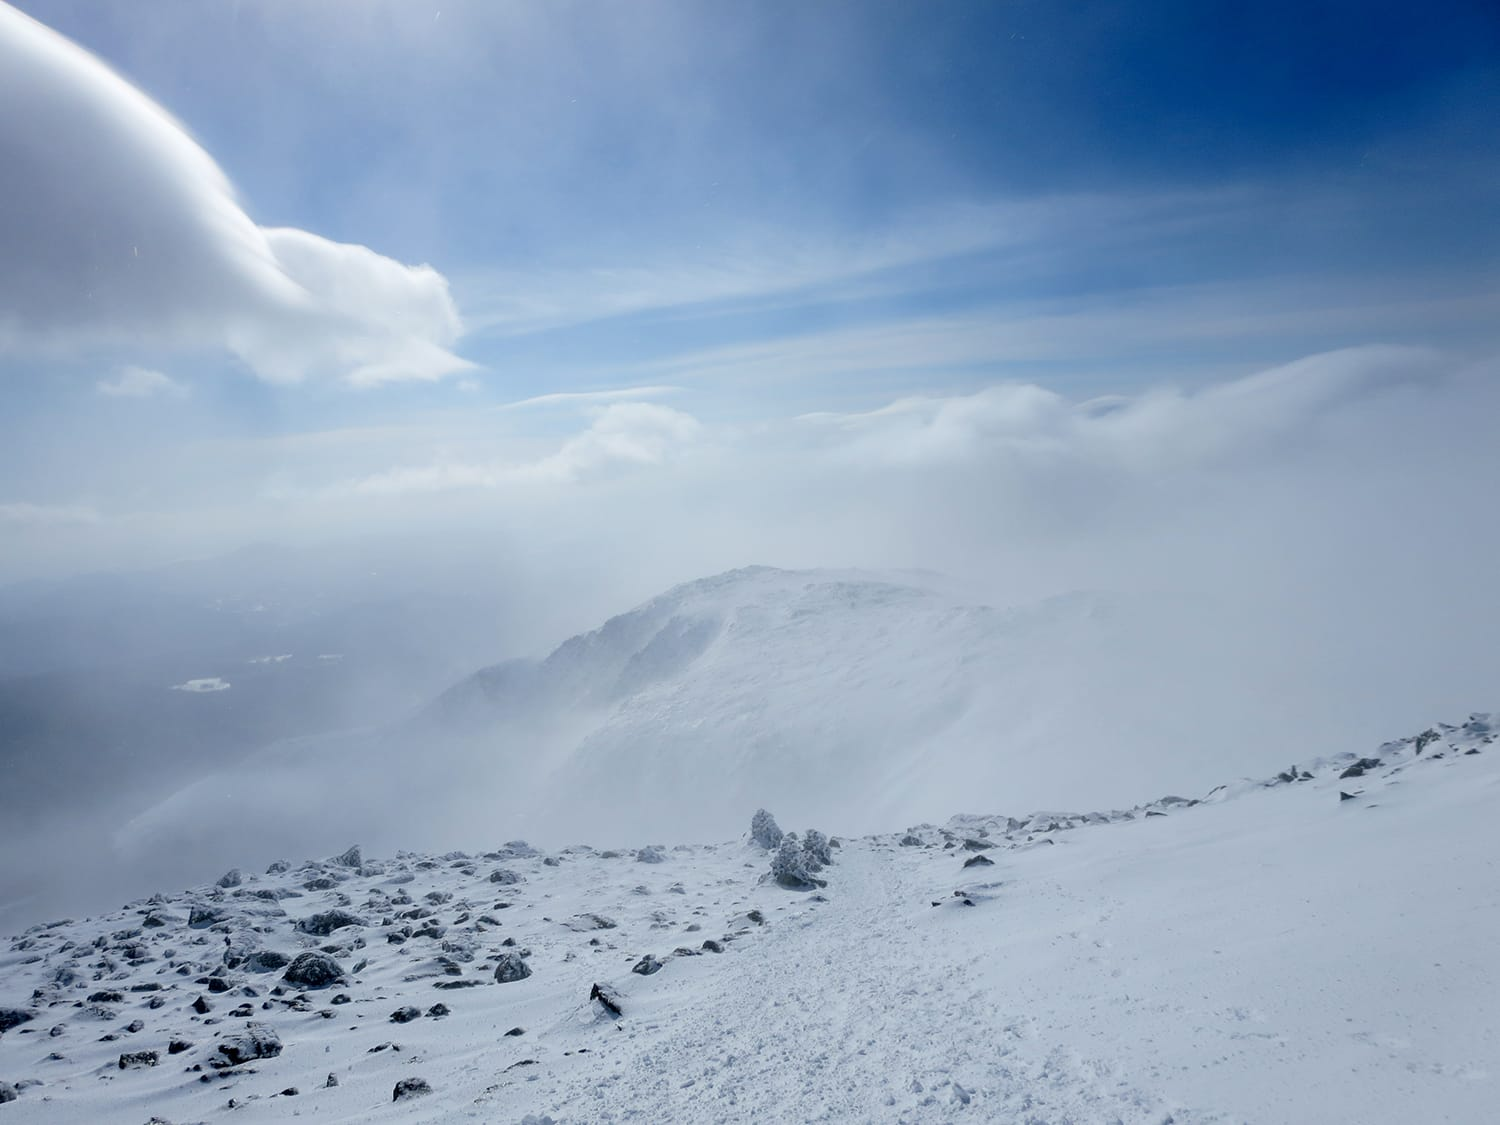 Mountaineering: Dispelling the Myth